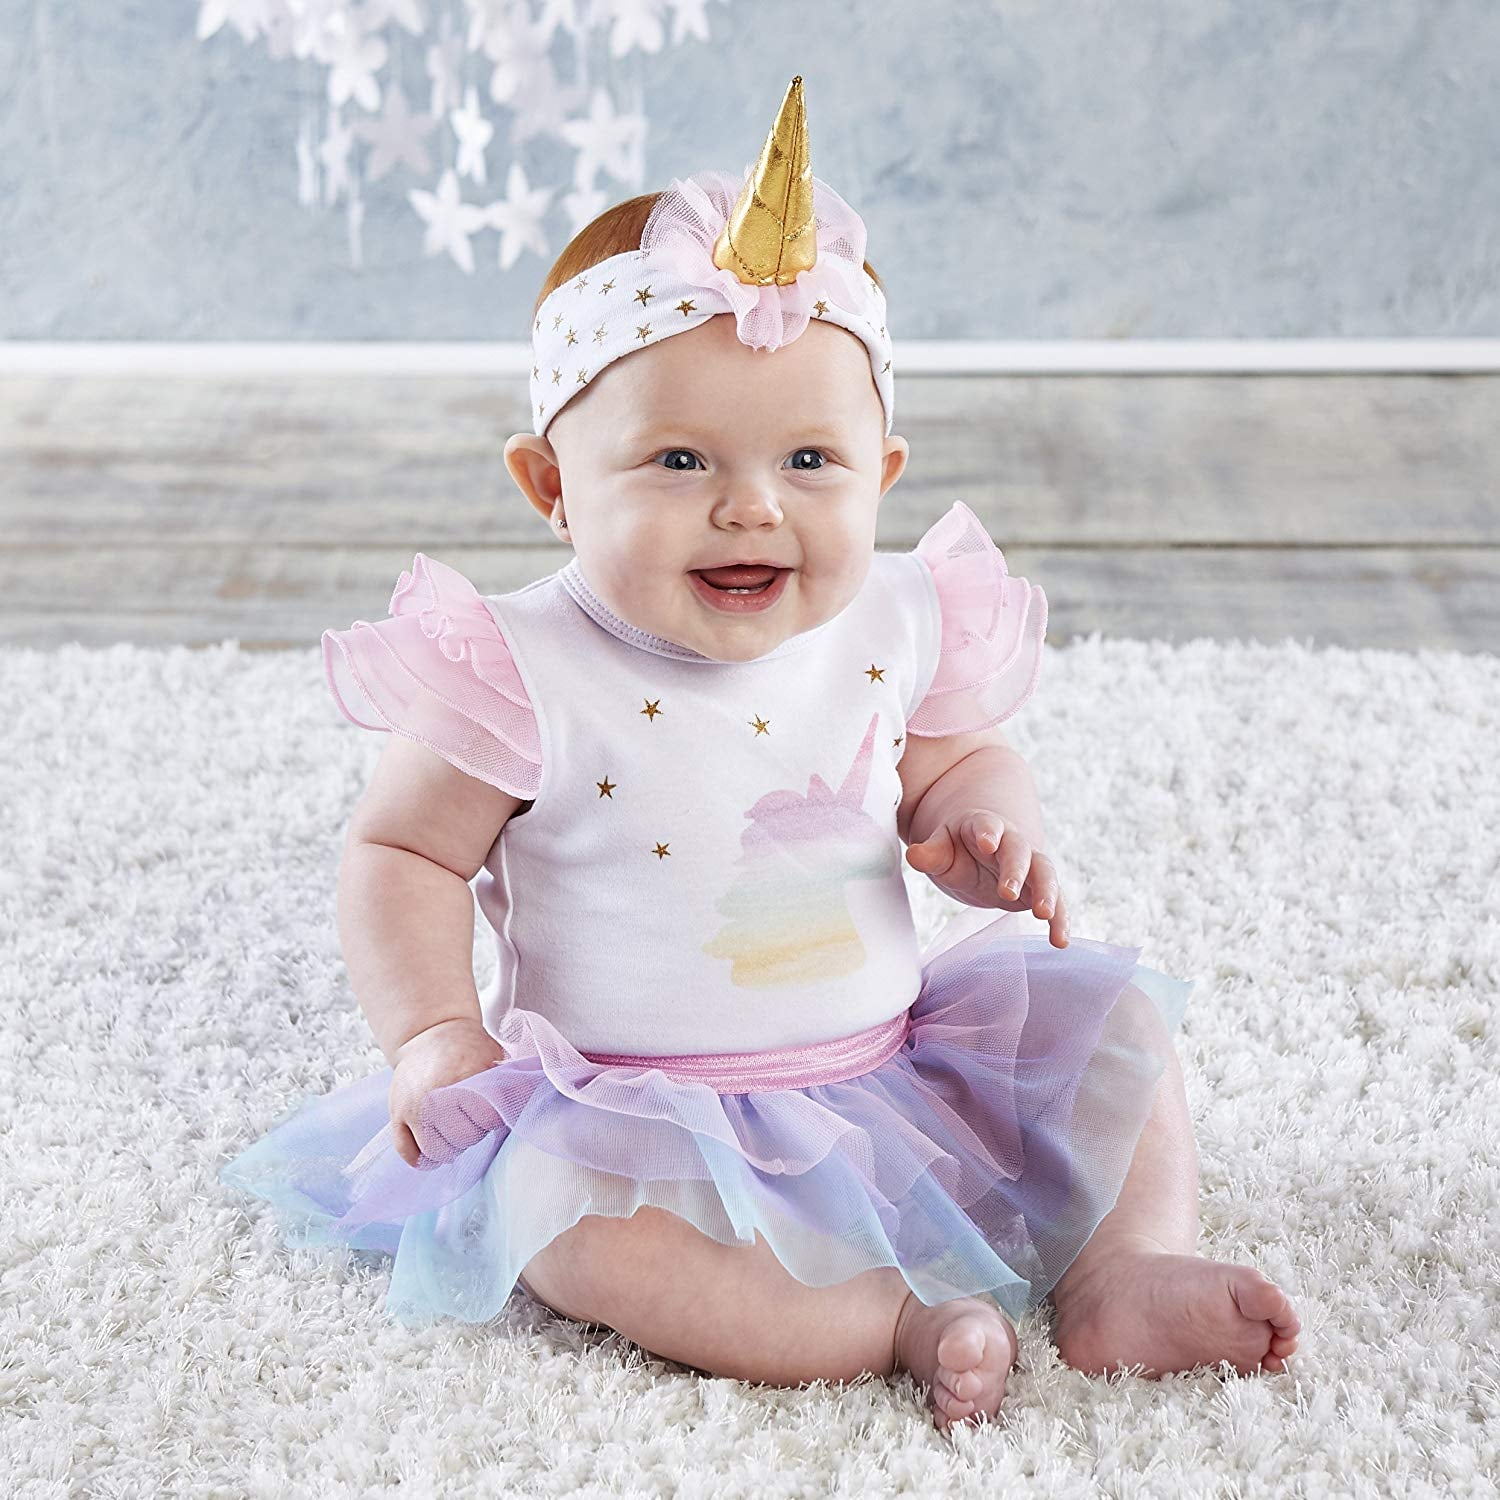 Best Halloween Costumes For Infants And Babies 2020 Popsugar Family